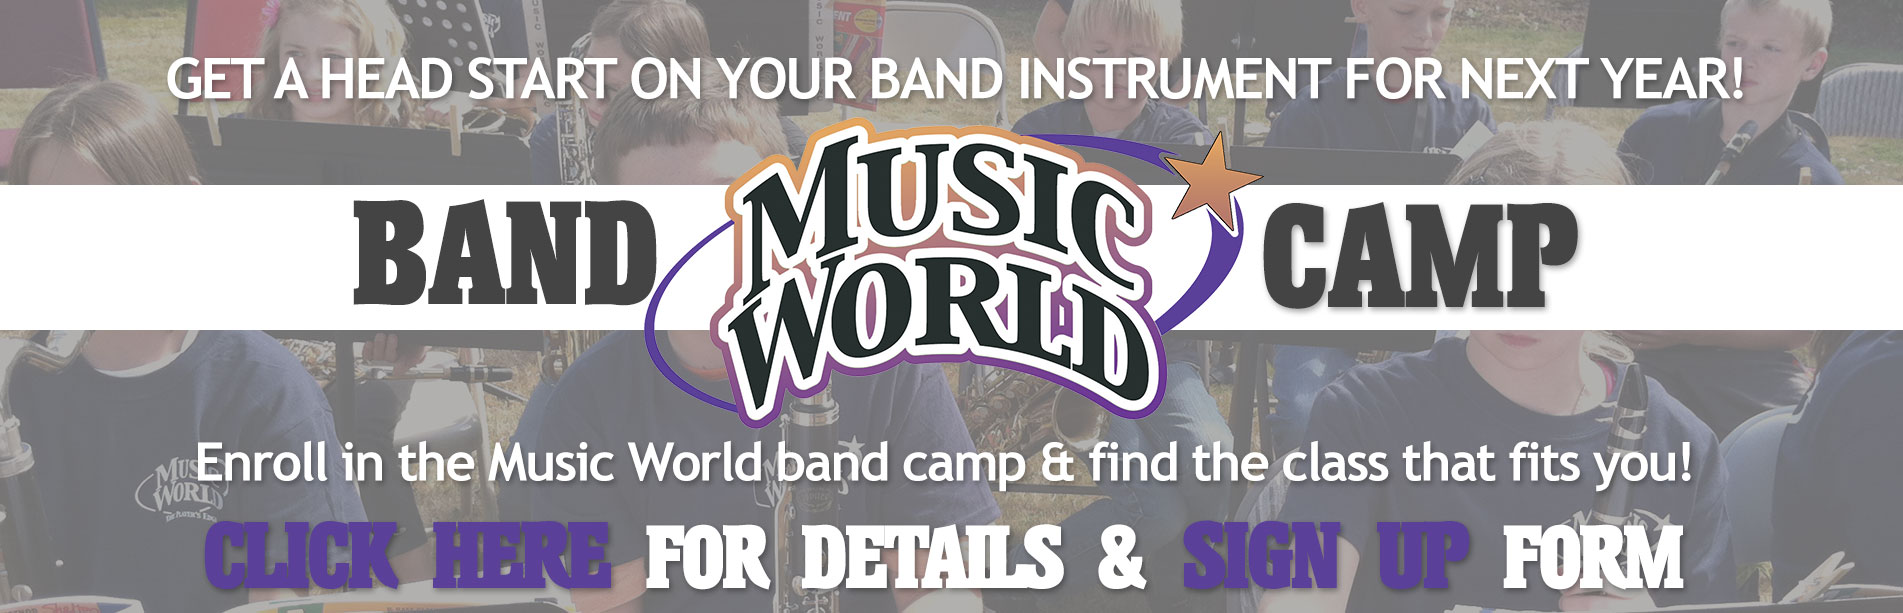 BAND-CAMP-WITH-LOGO-FIX